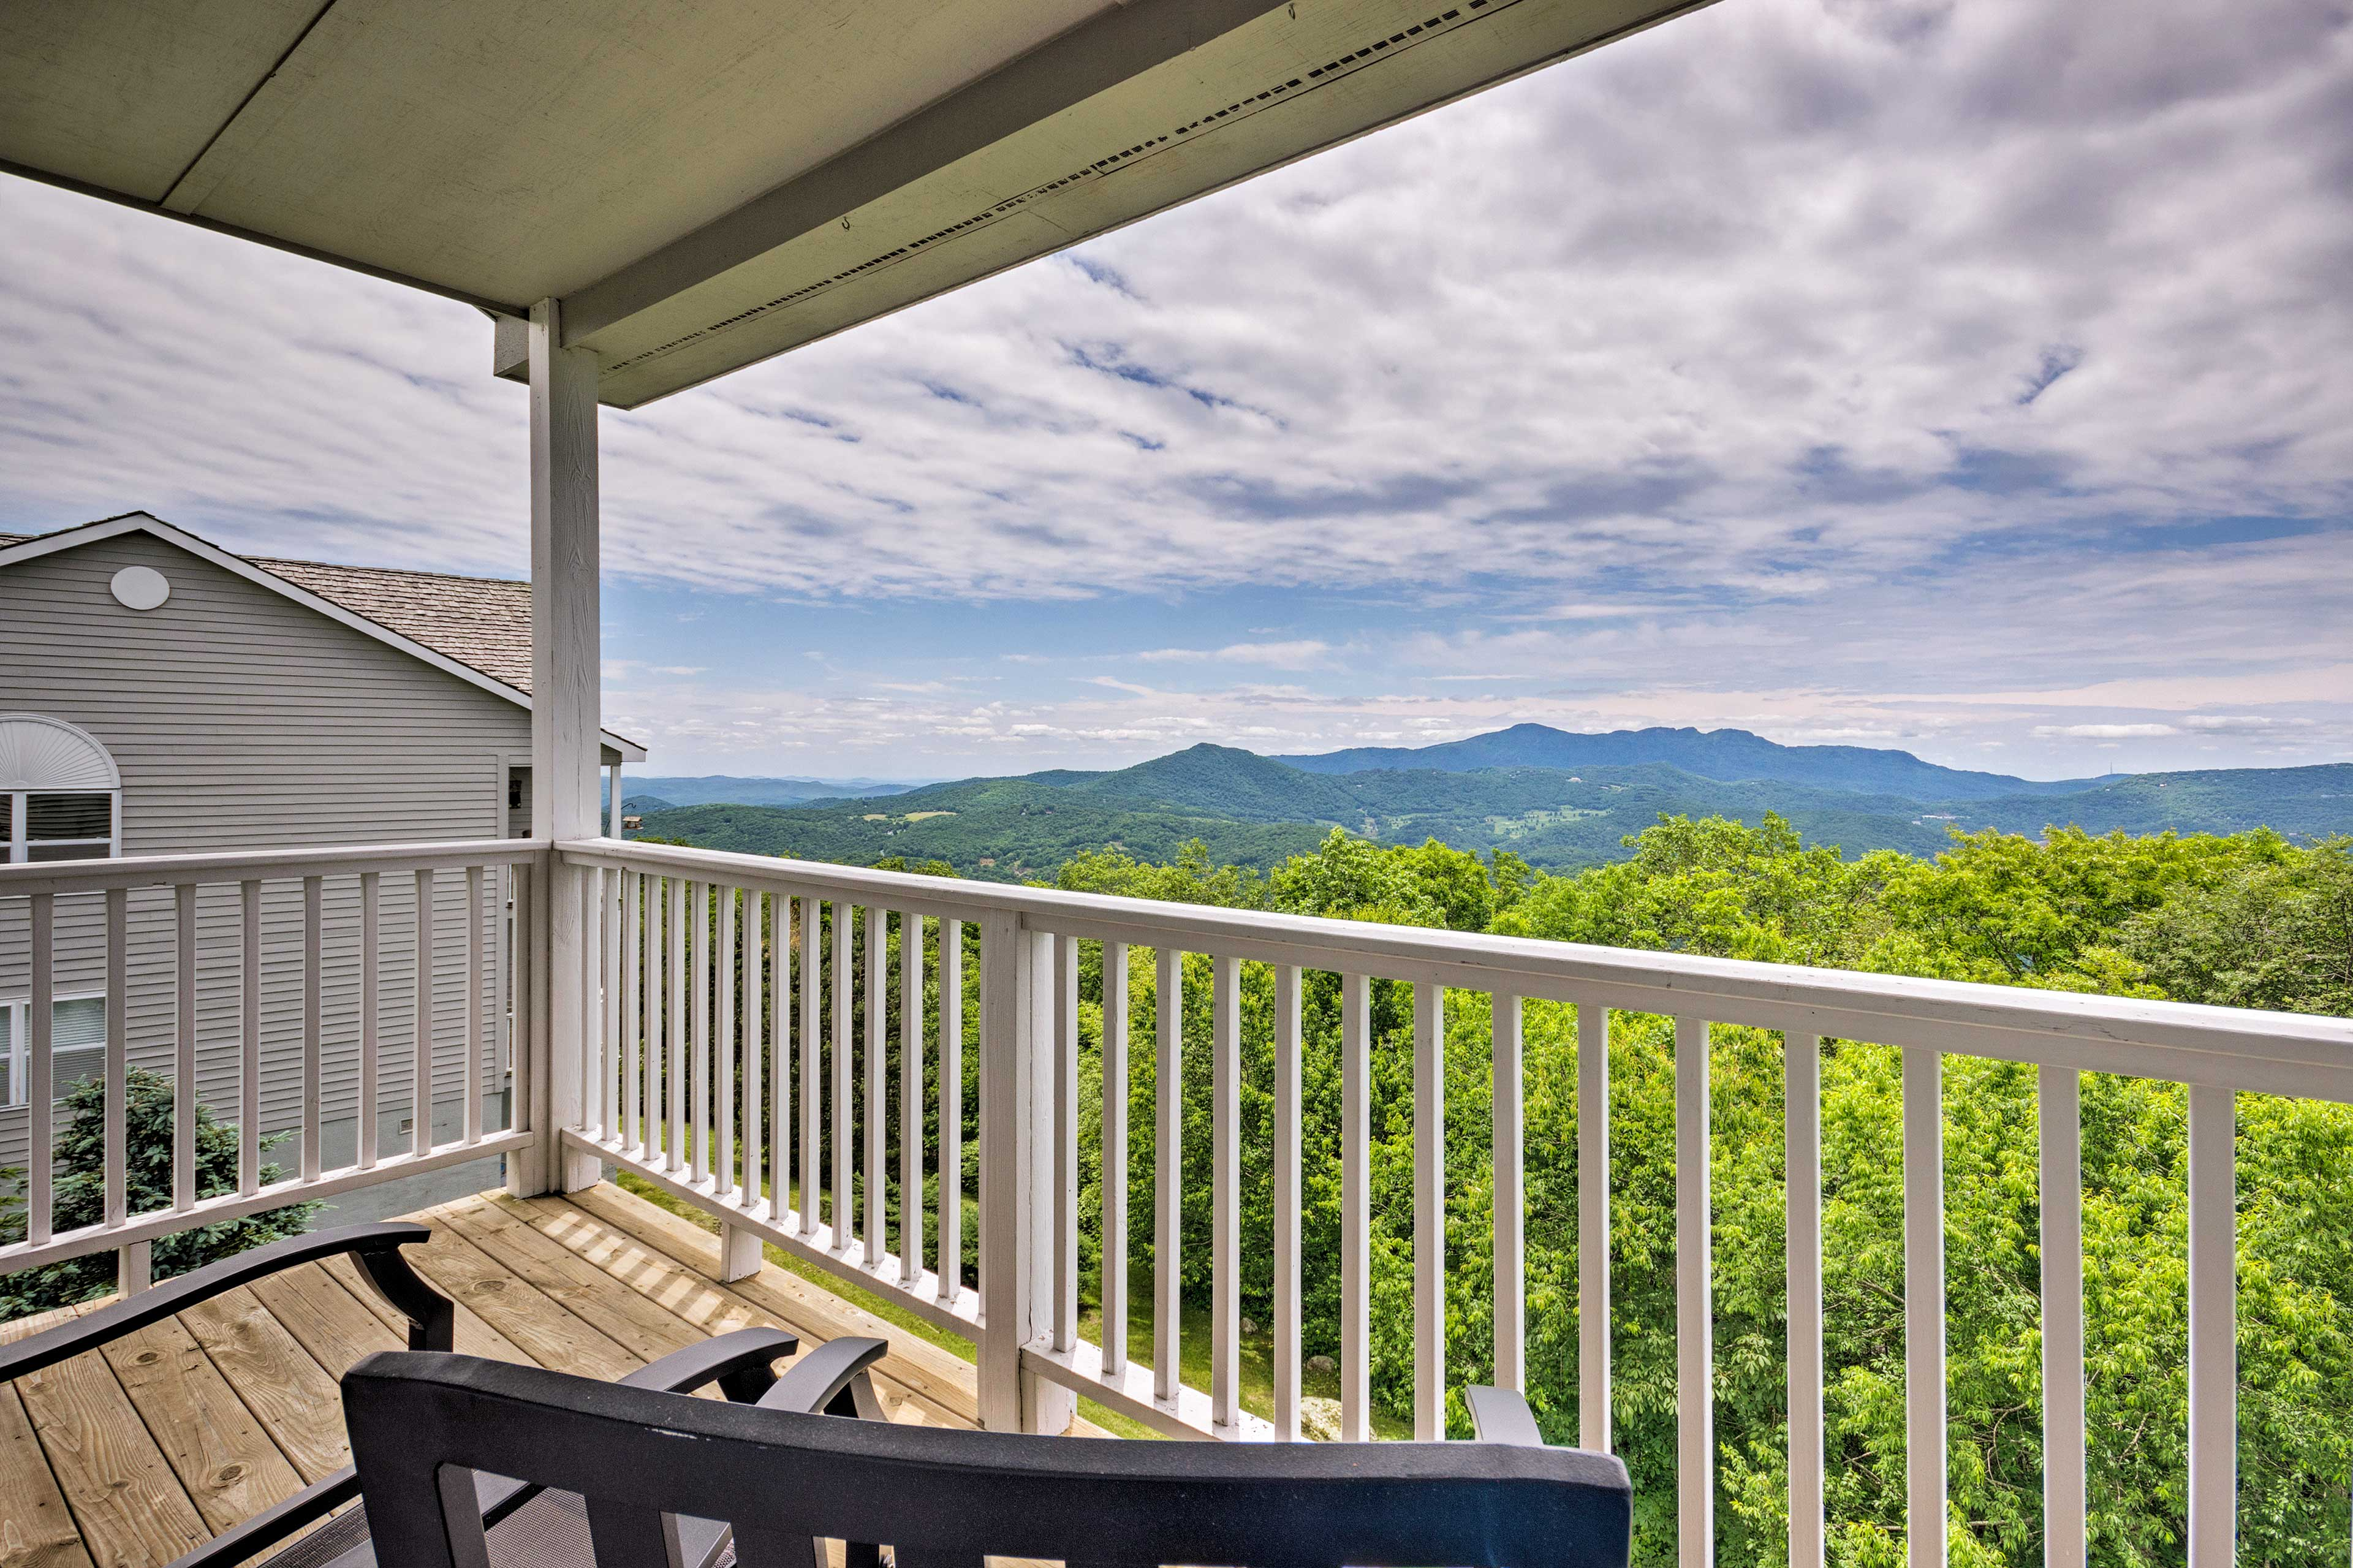 You'll love unwinding on the private balcony with mountain views.